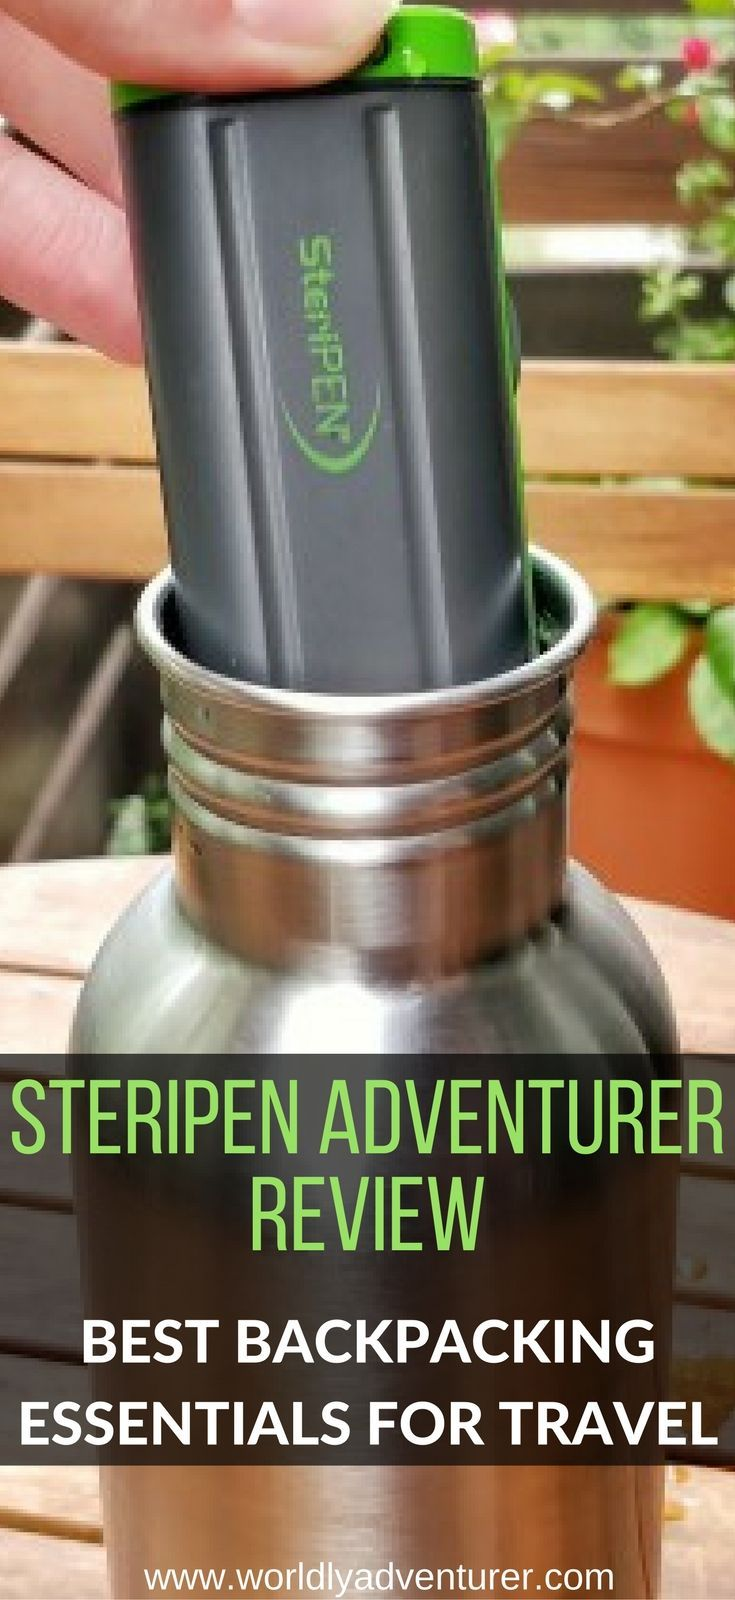 Portable water purifier for survival and camping | water filter for camping and hiking | water sterilizer | backpacking essentials for travel, hiking, the outdoors and camping | backpacking gear and tips.